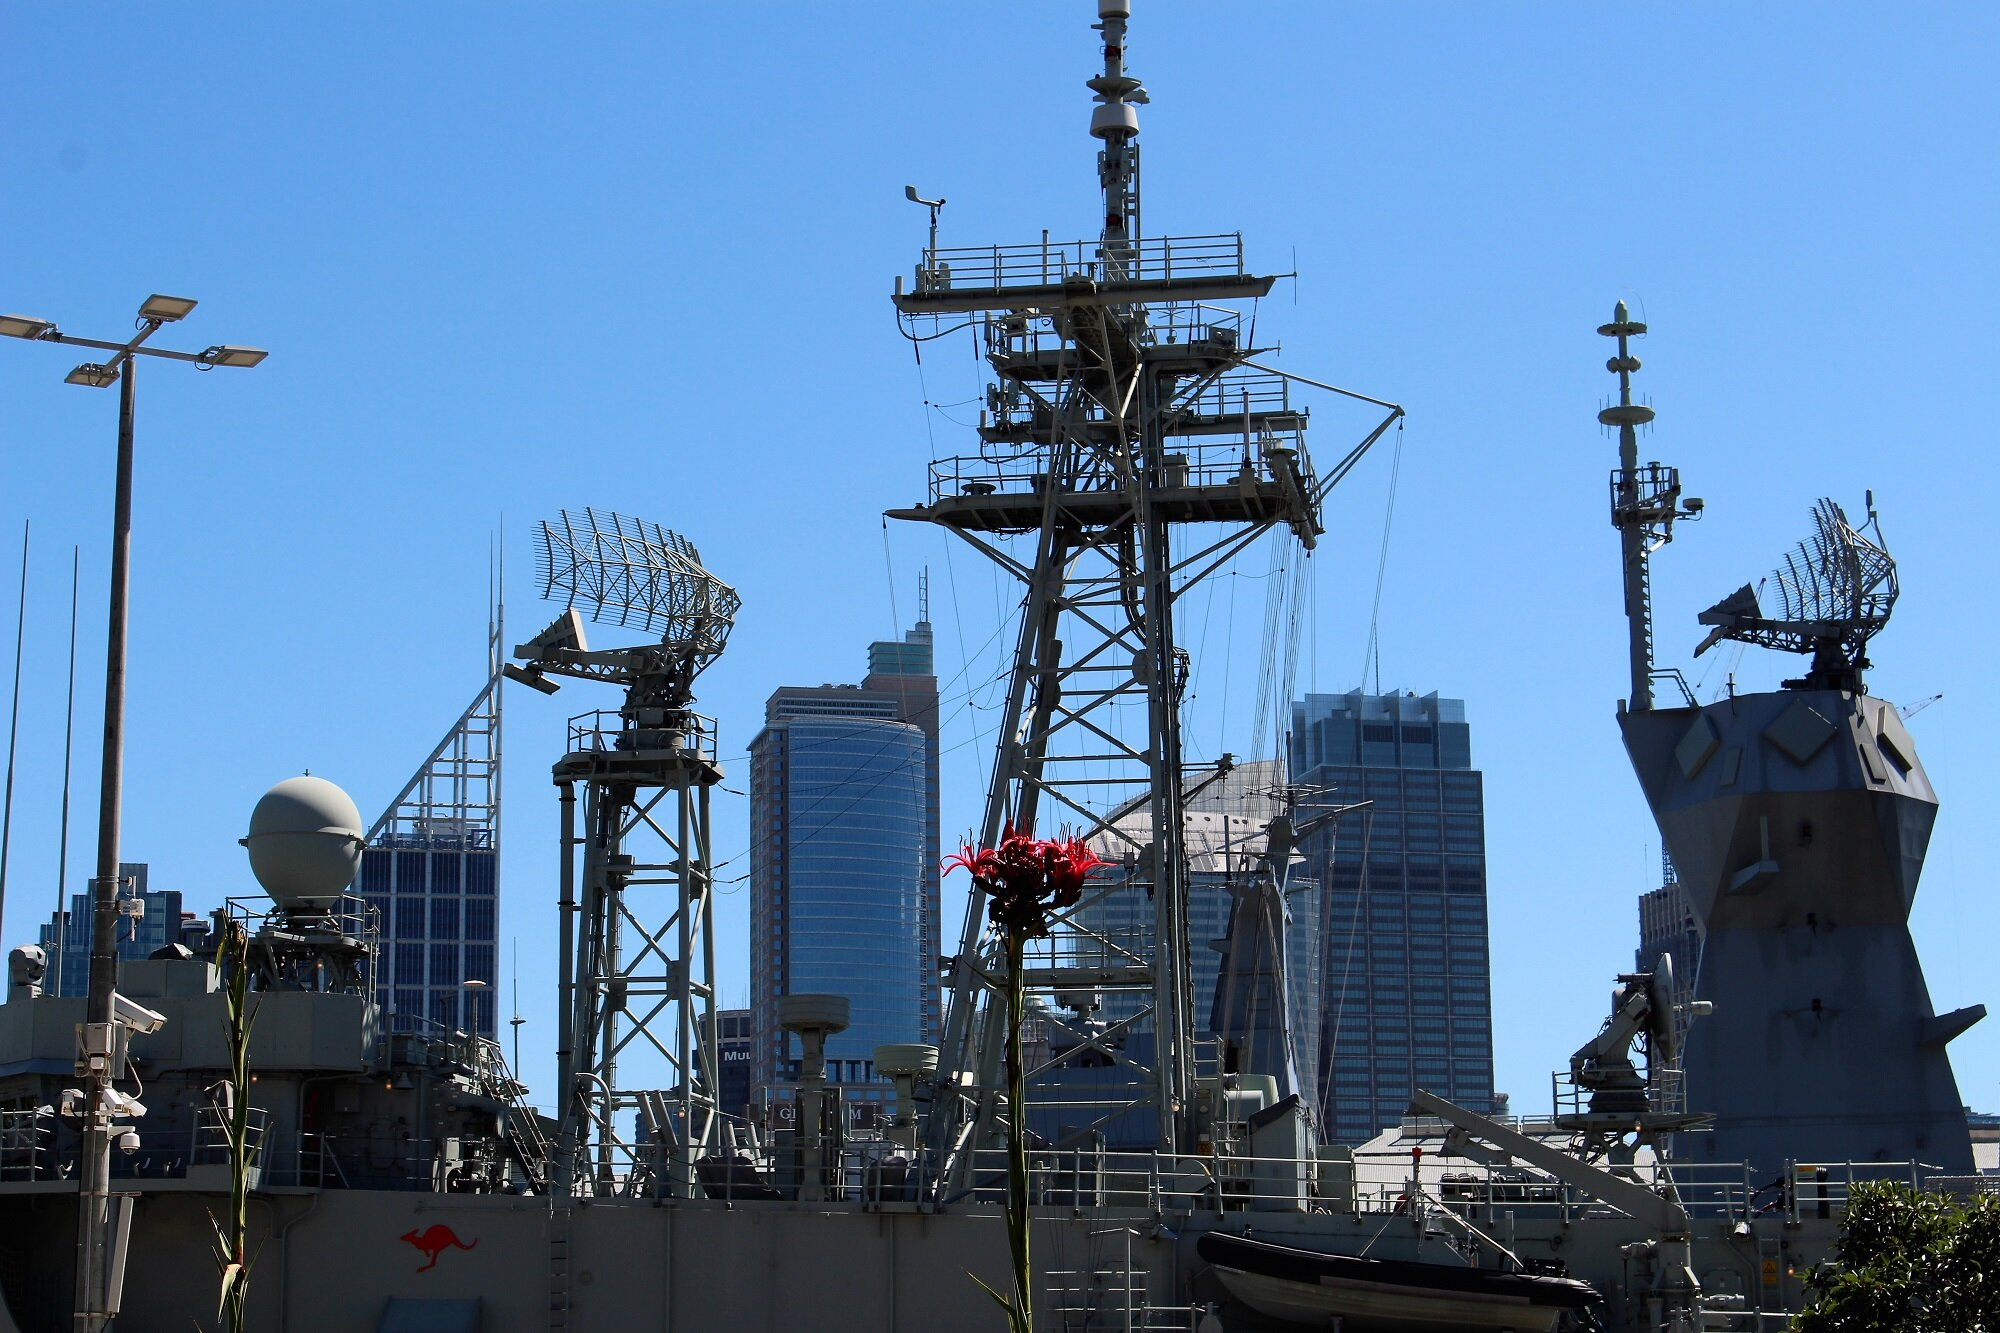 power of one plus Australian navy vessel and Sydney city